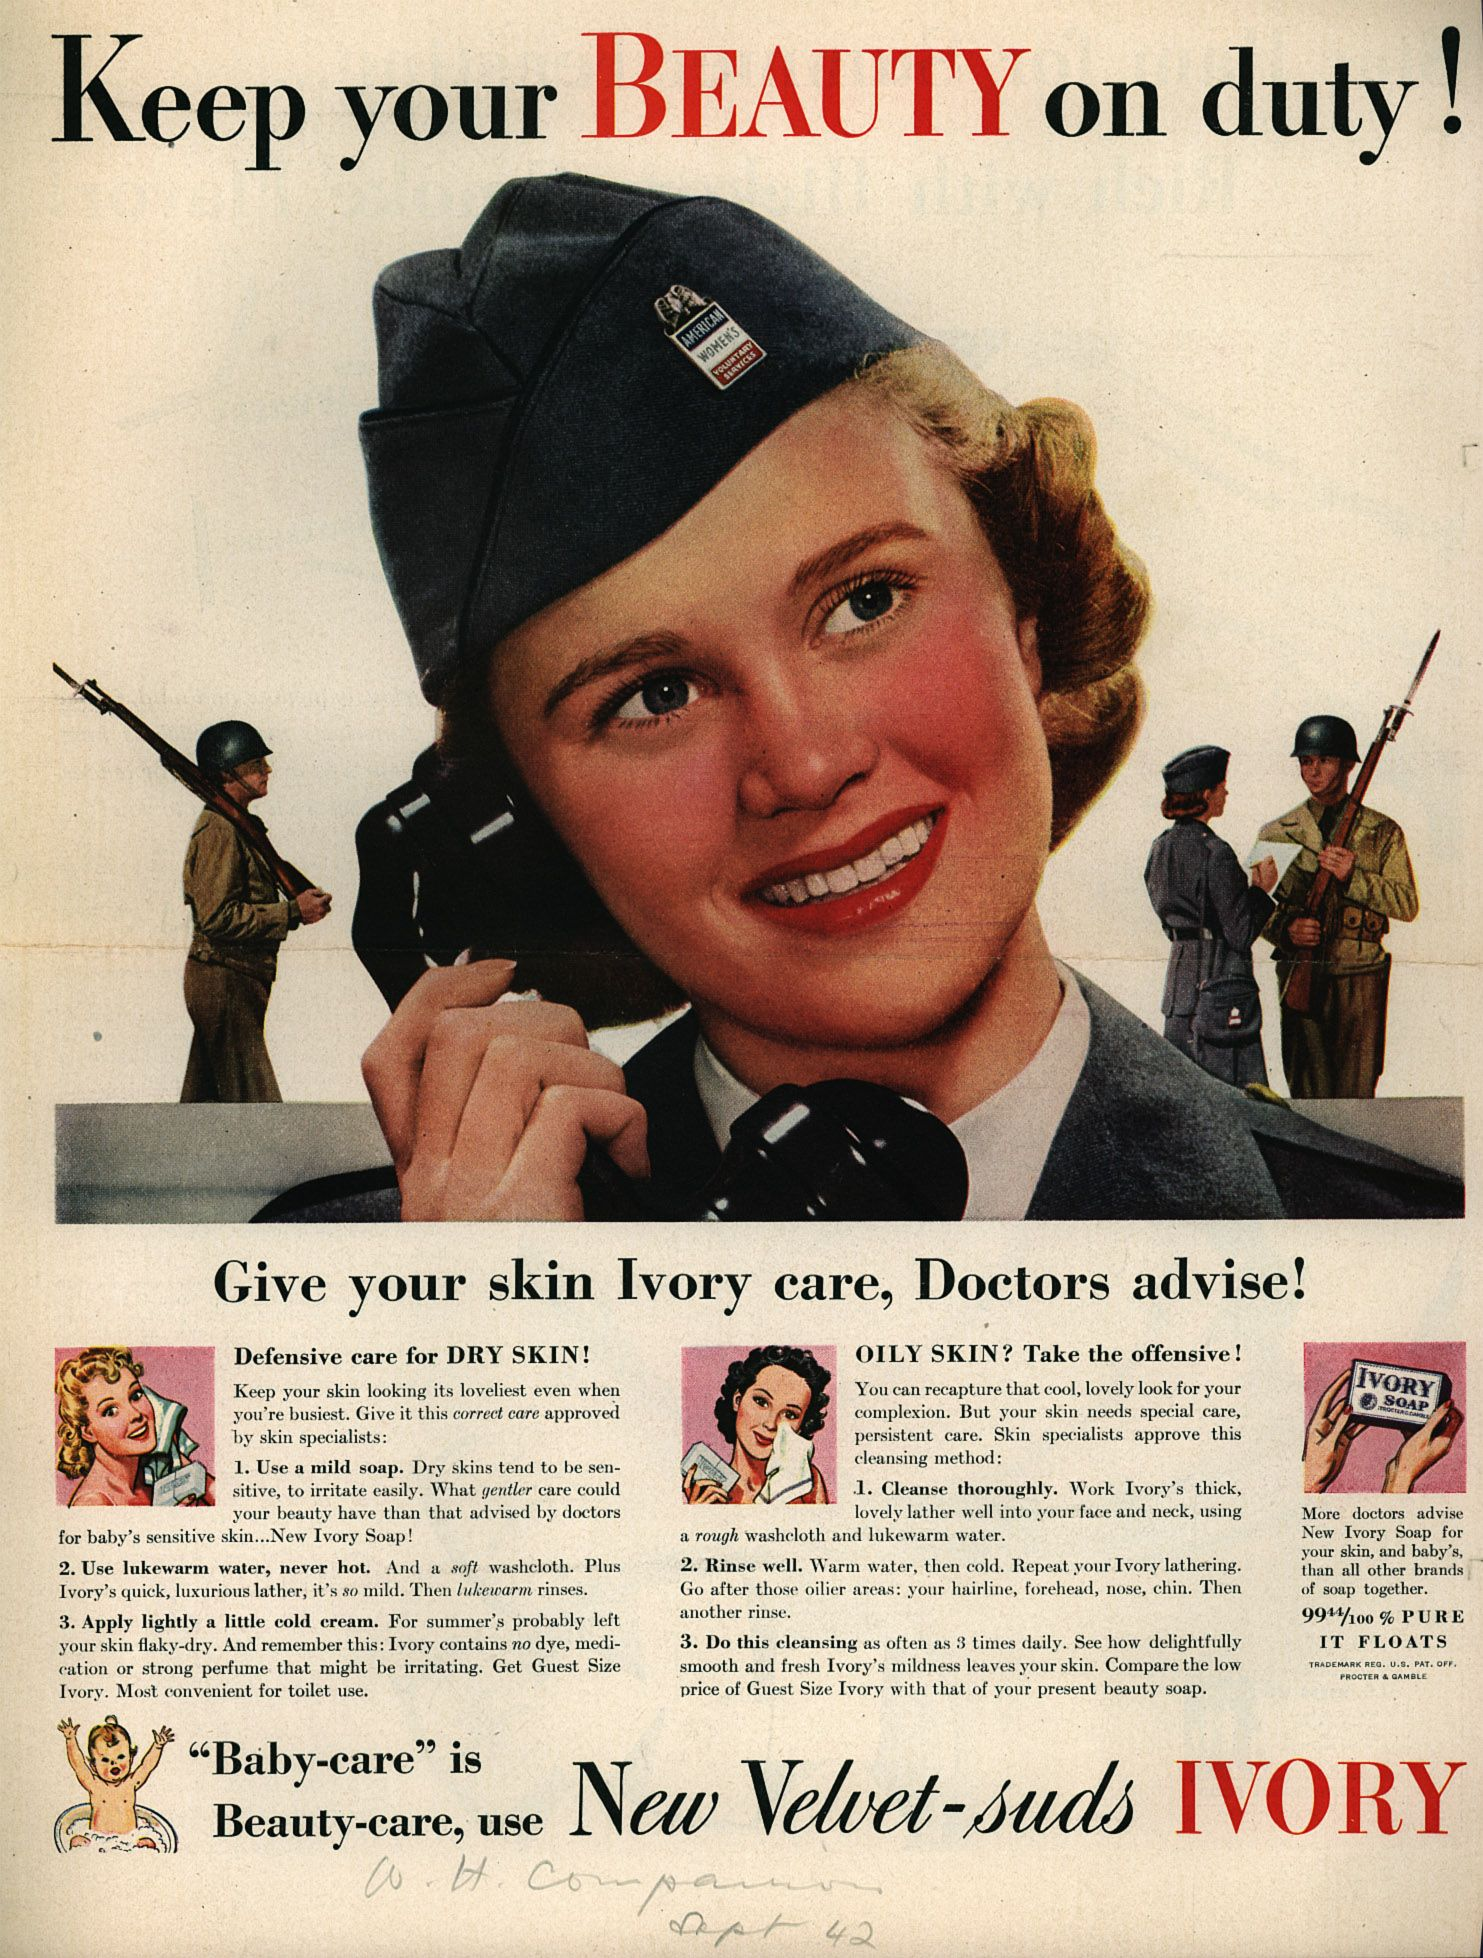 Women heroines of World War II who changed the course of history